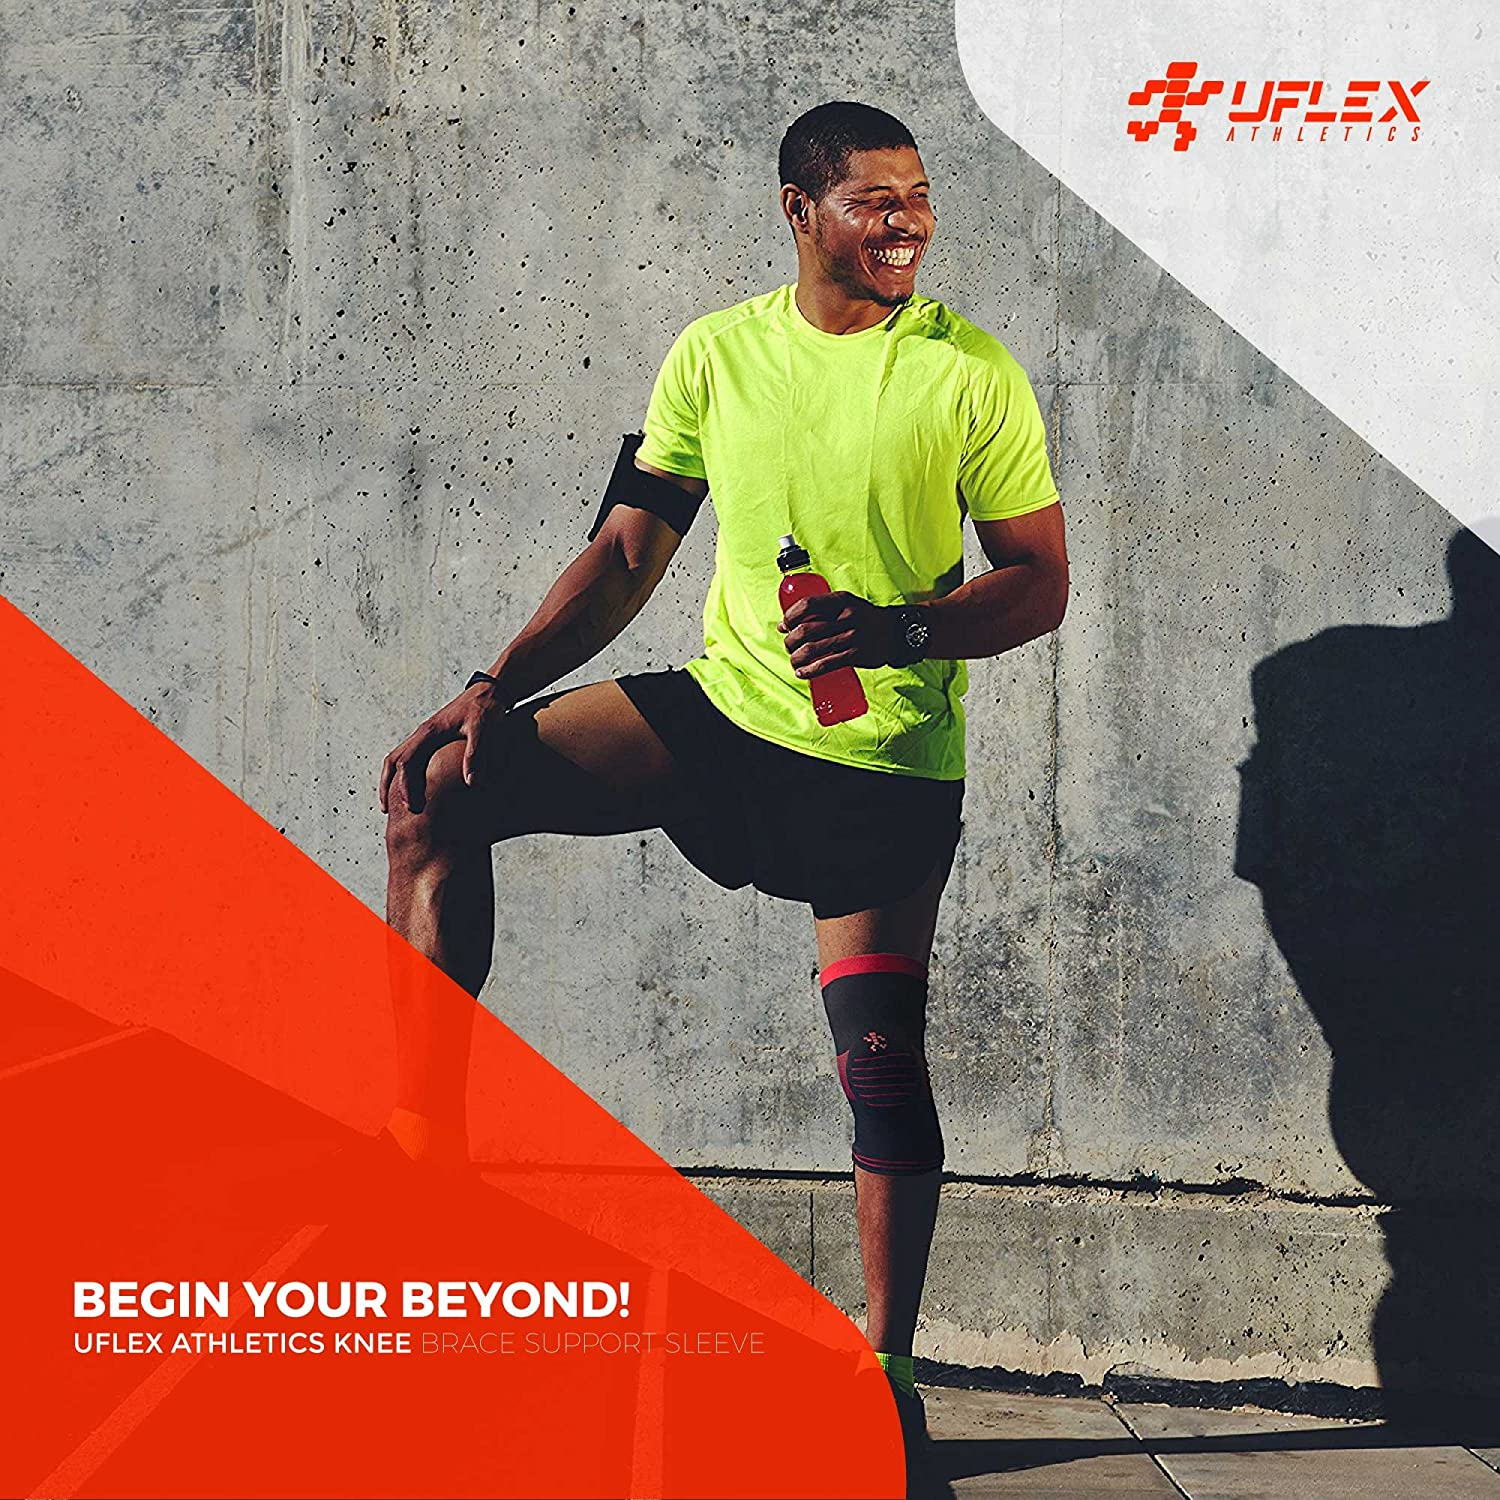 0eb2cb555e Amazon.com : UFlex Athletics Knee Brace Support Sleeve with Side Stabilizers  and Patella Padding for Post Surgery, Knee Replacement Treatment, ACL, MCL,  ...